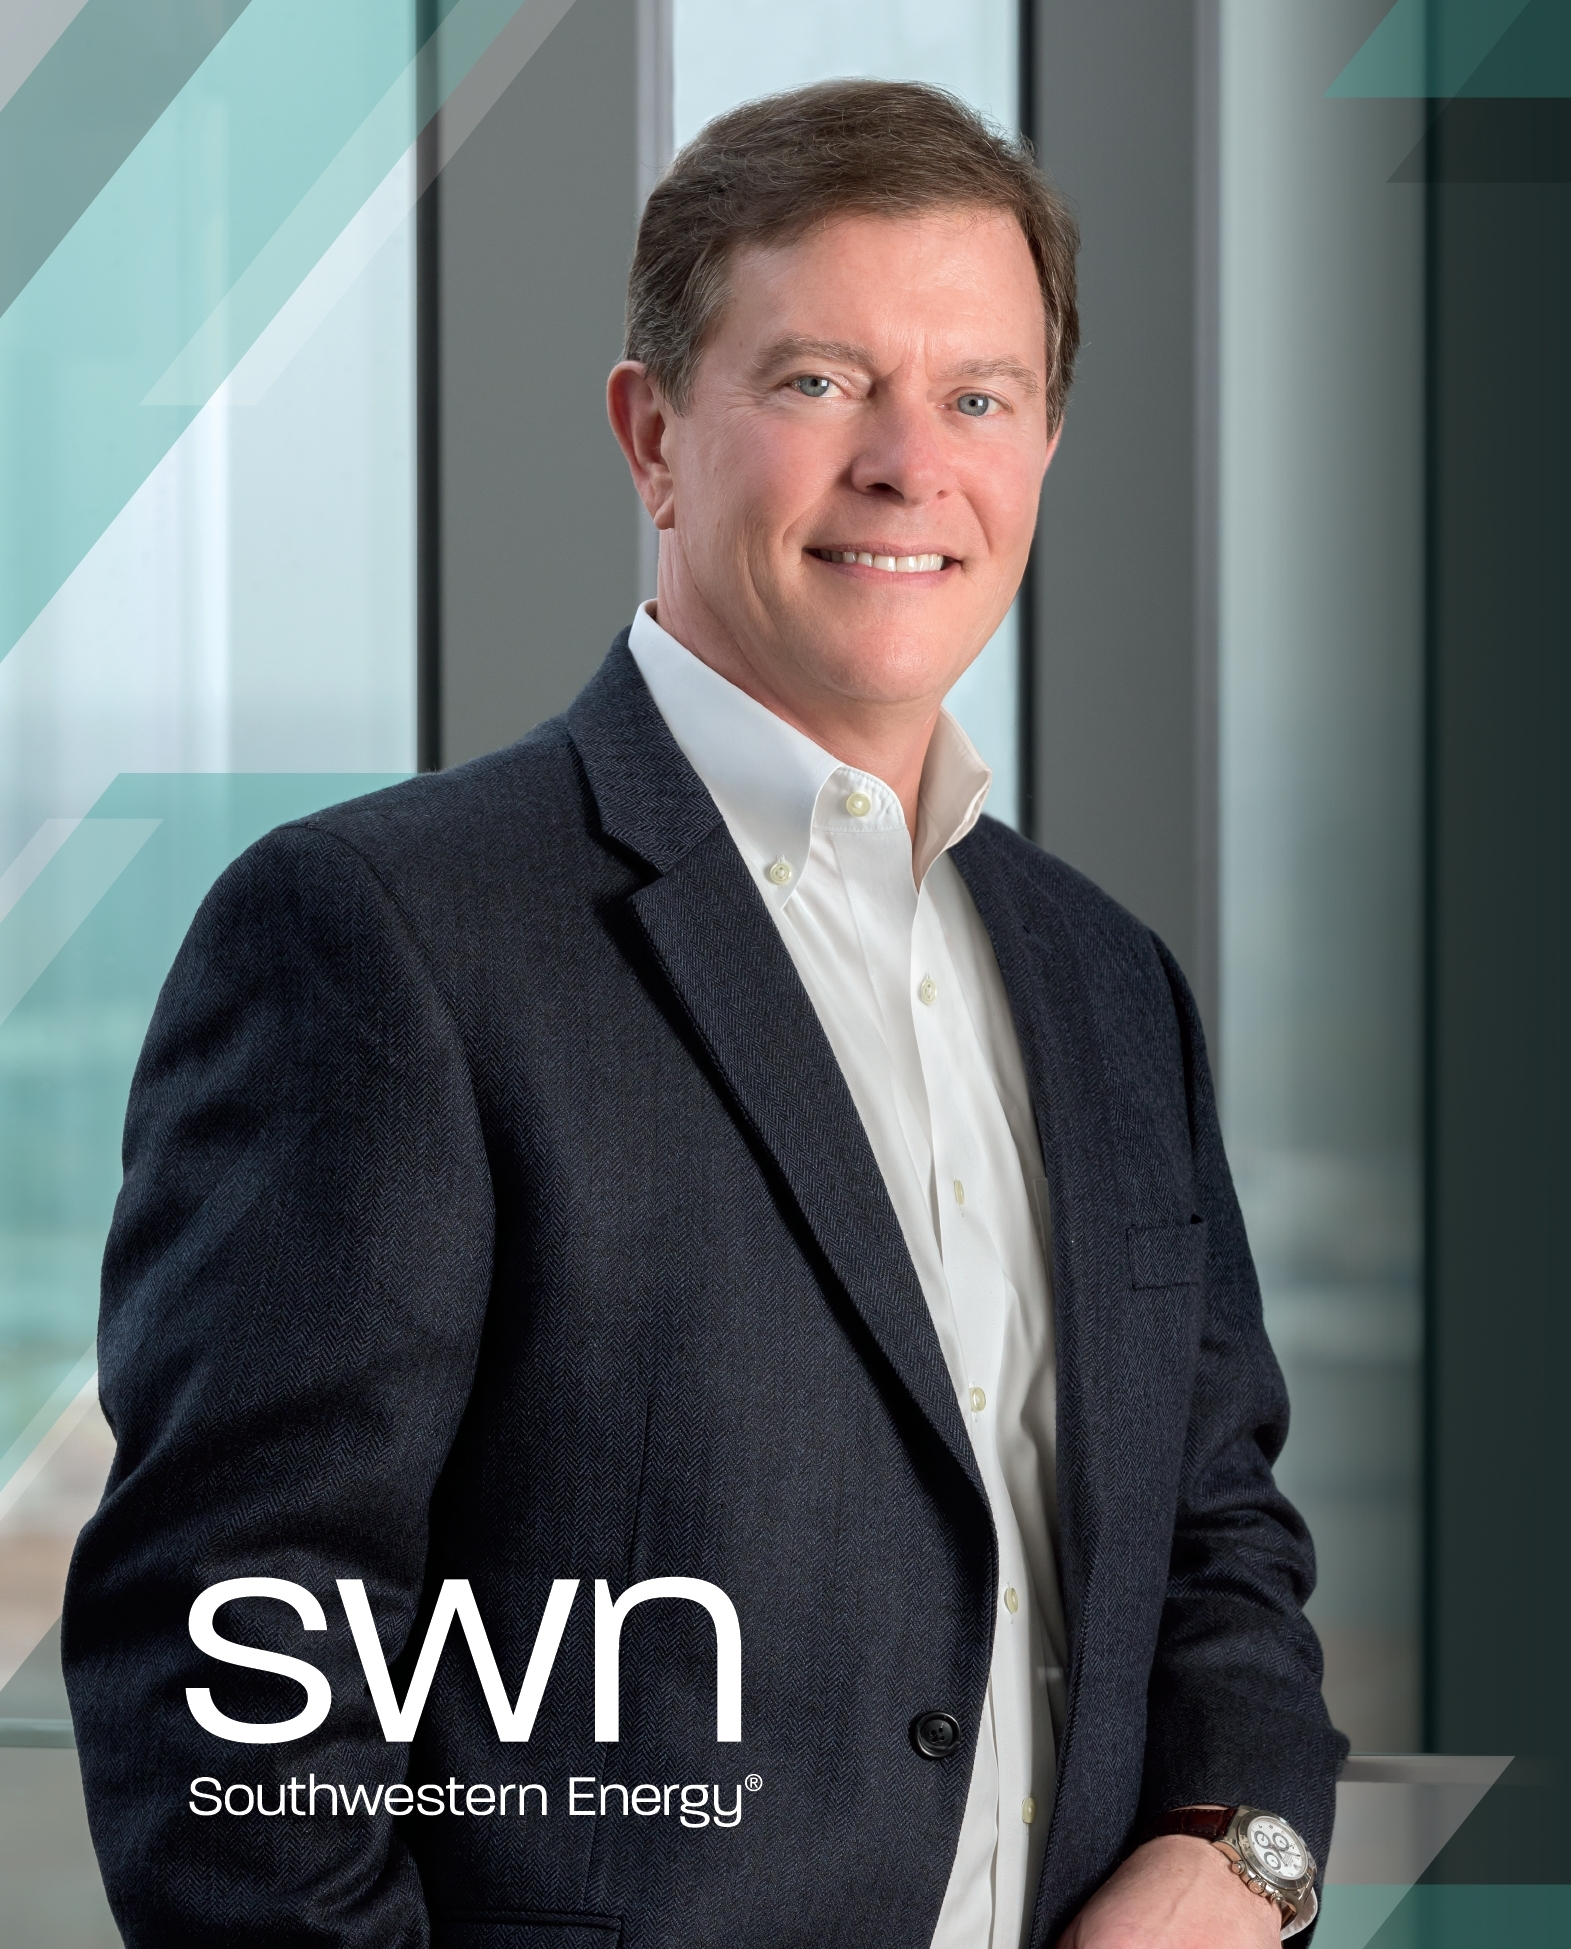 Southwestern Energy CEO and President Bill Way Named